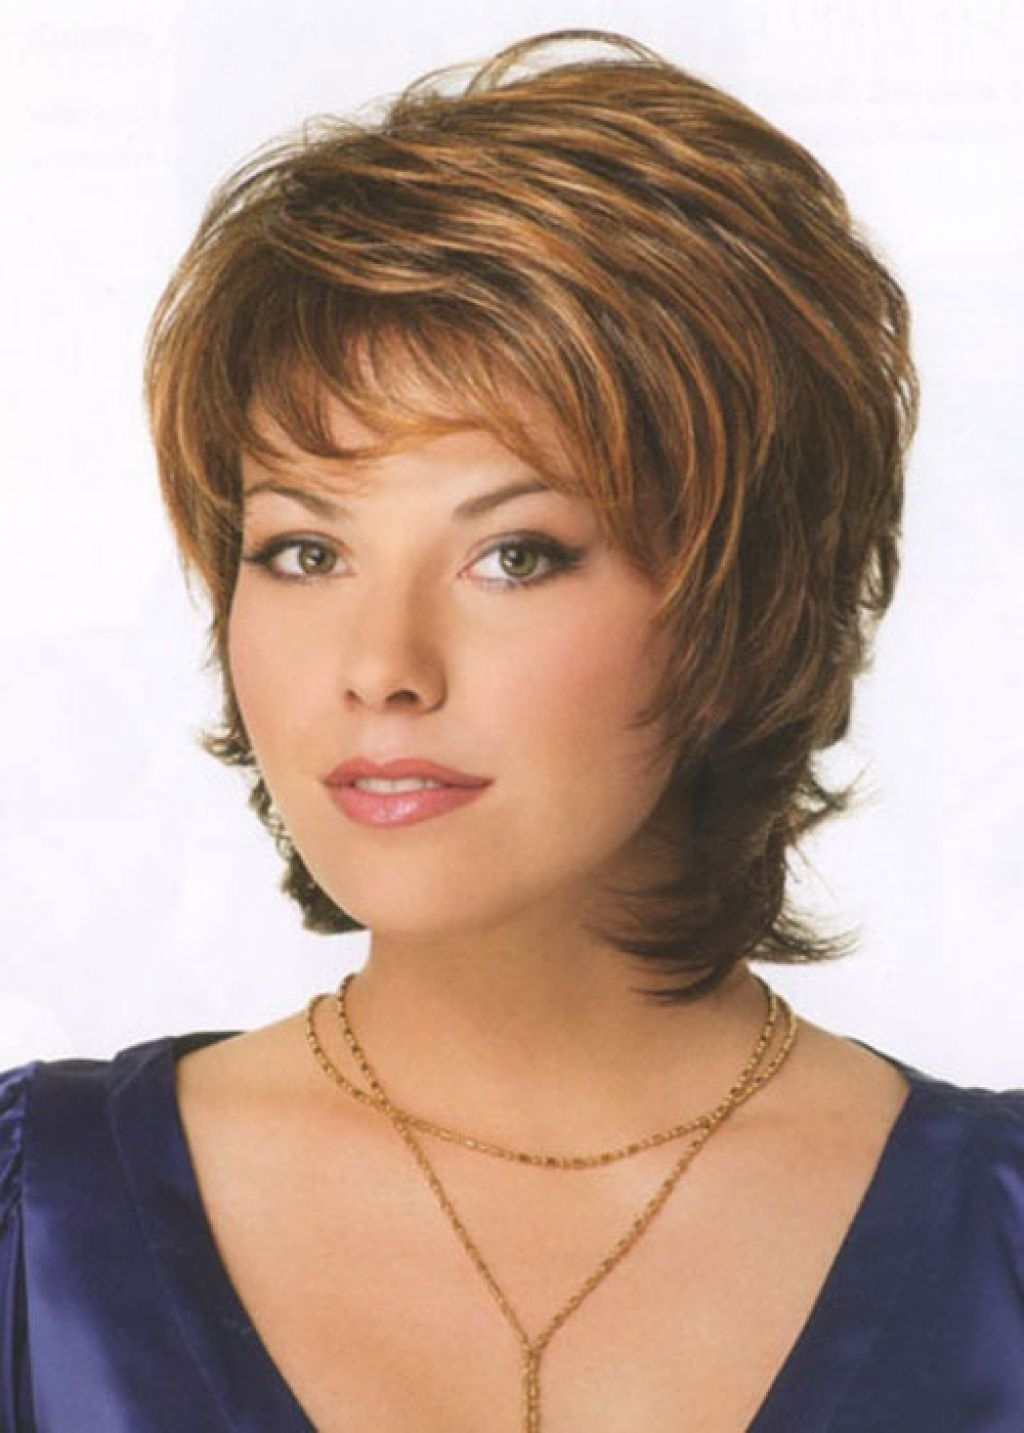 Hairstyles For Short Hair Over 65 #hairstyles with regard to Short Hair Styles For Over 65